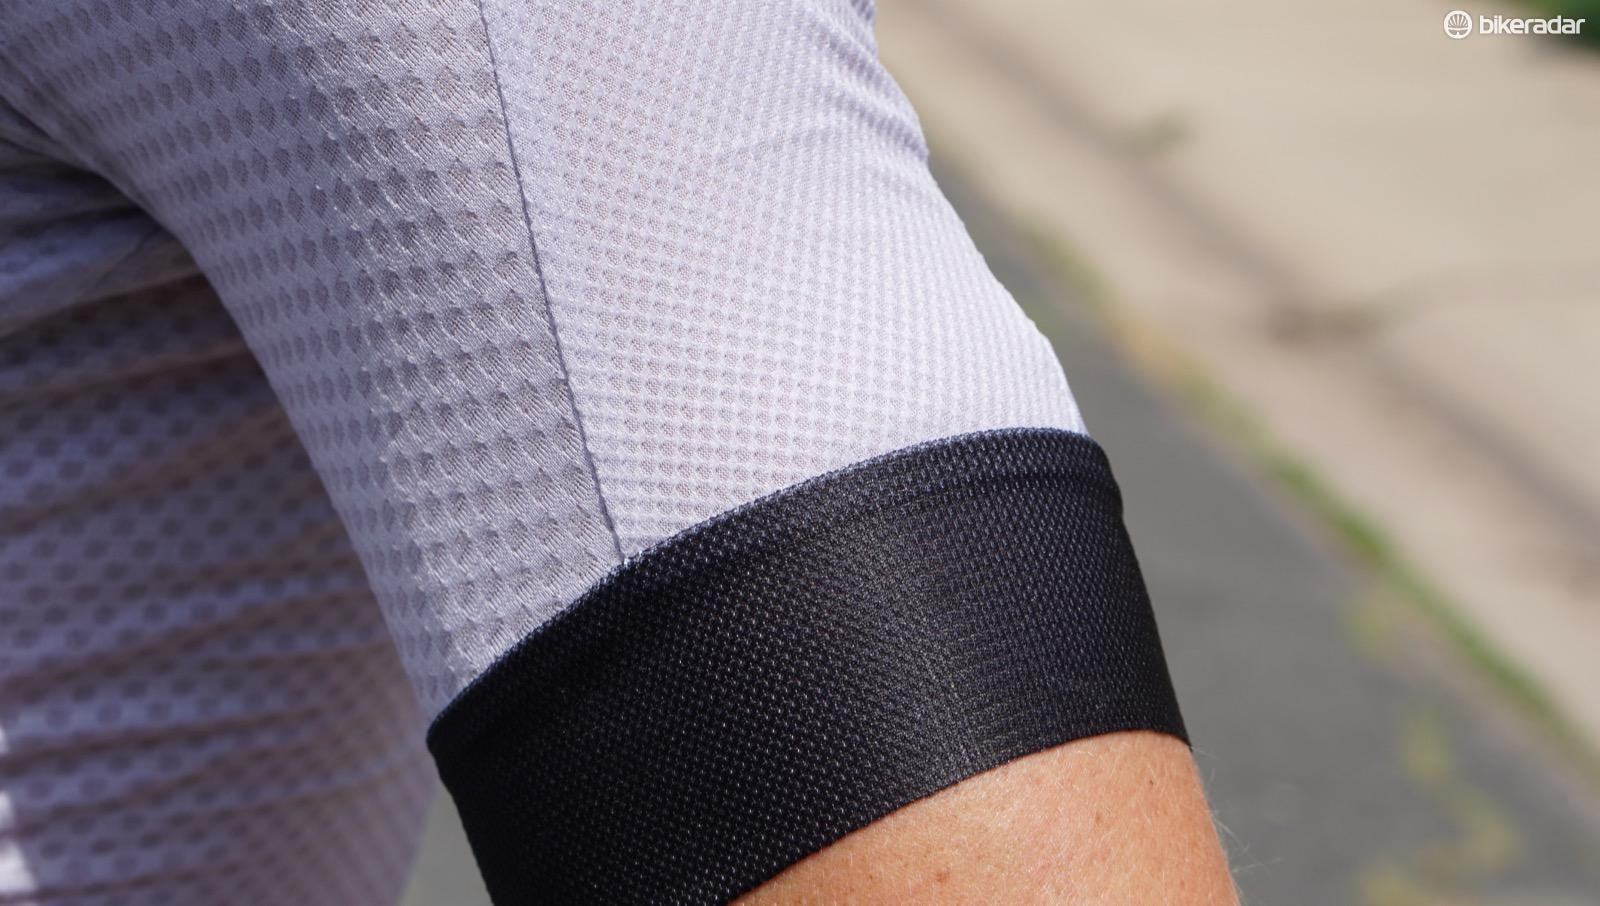 The Climber's 2.0 Jersey sleeves stay in place without squeezing or any silicone